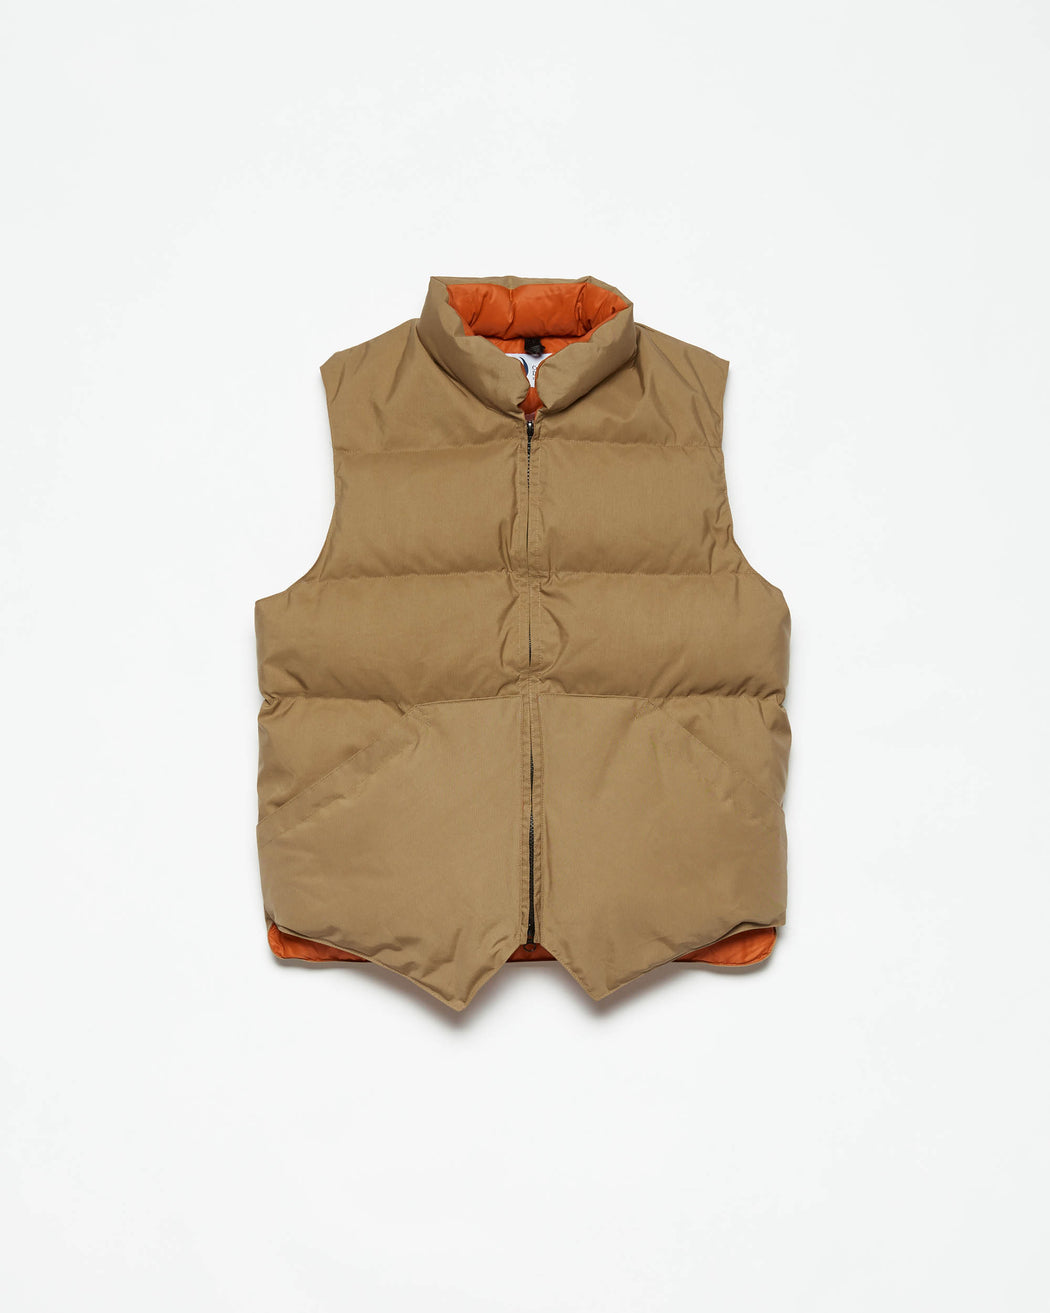 North by Northwest Vest - Tan & Rust 60/40